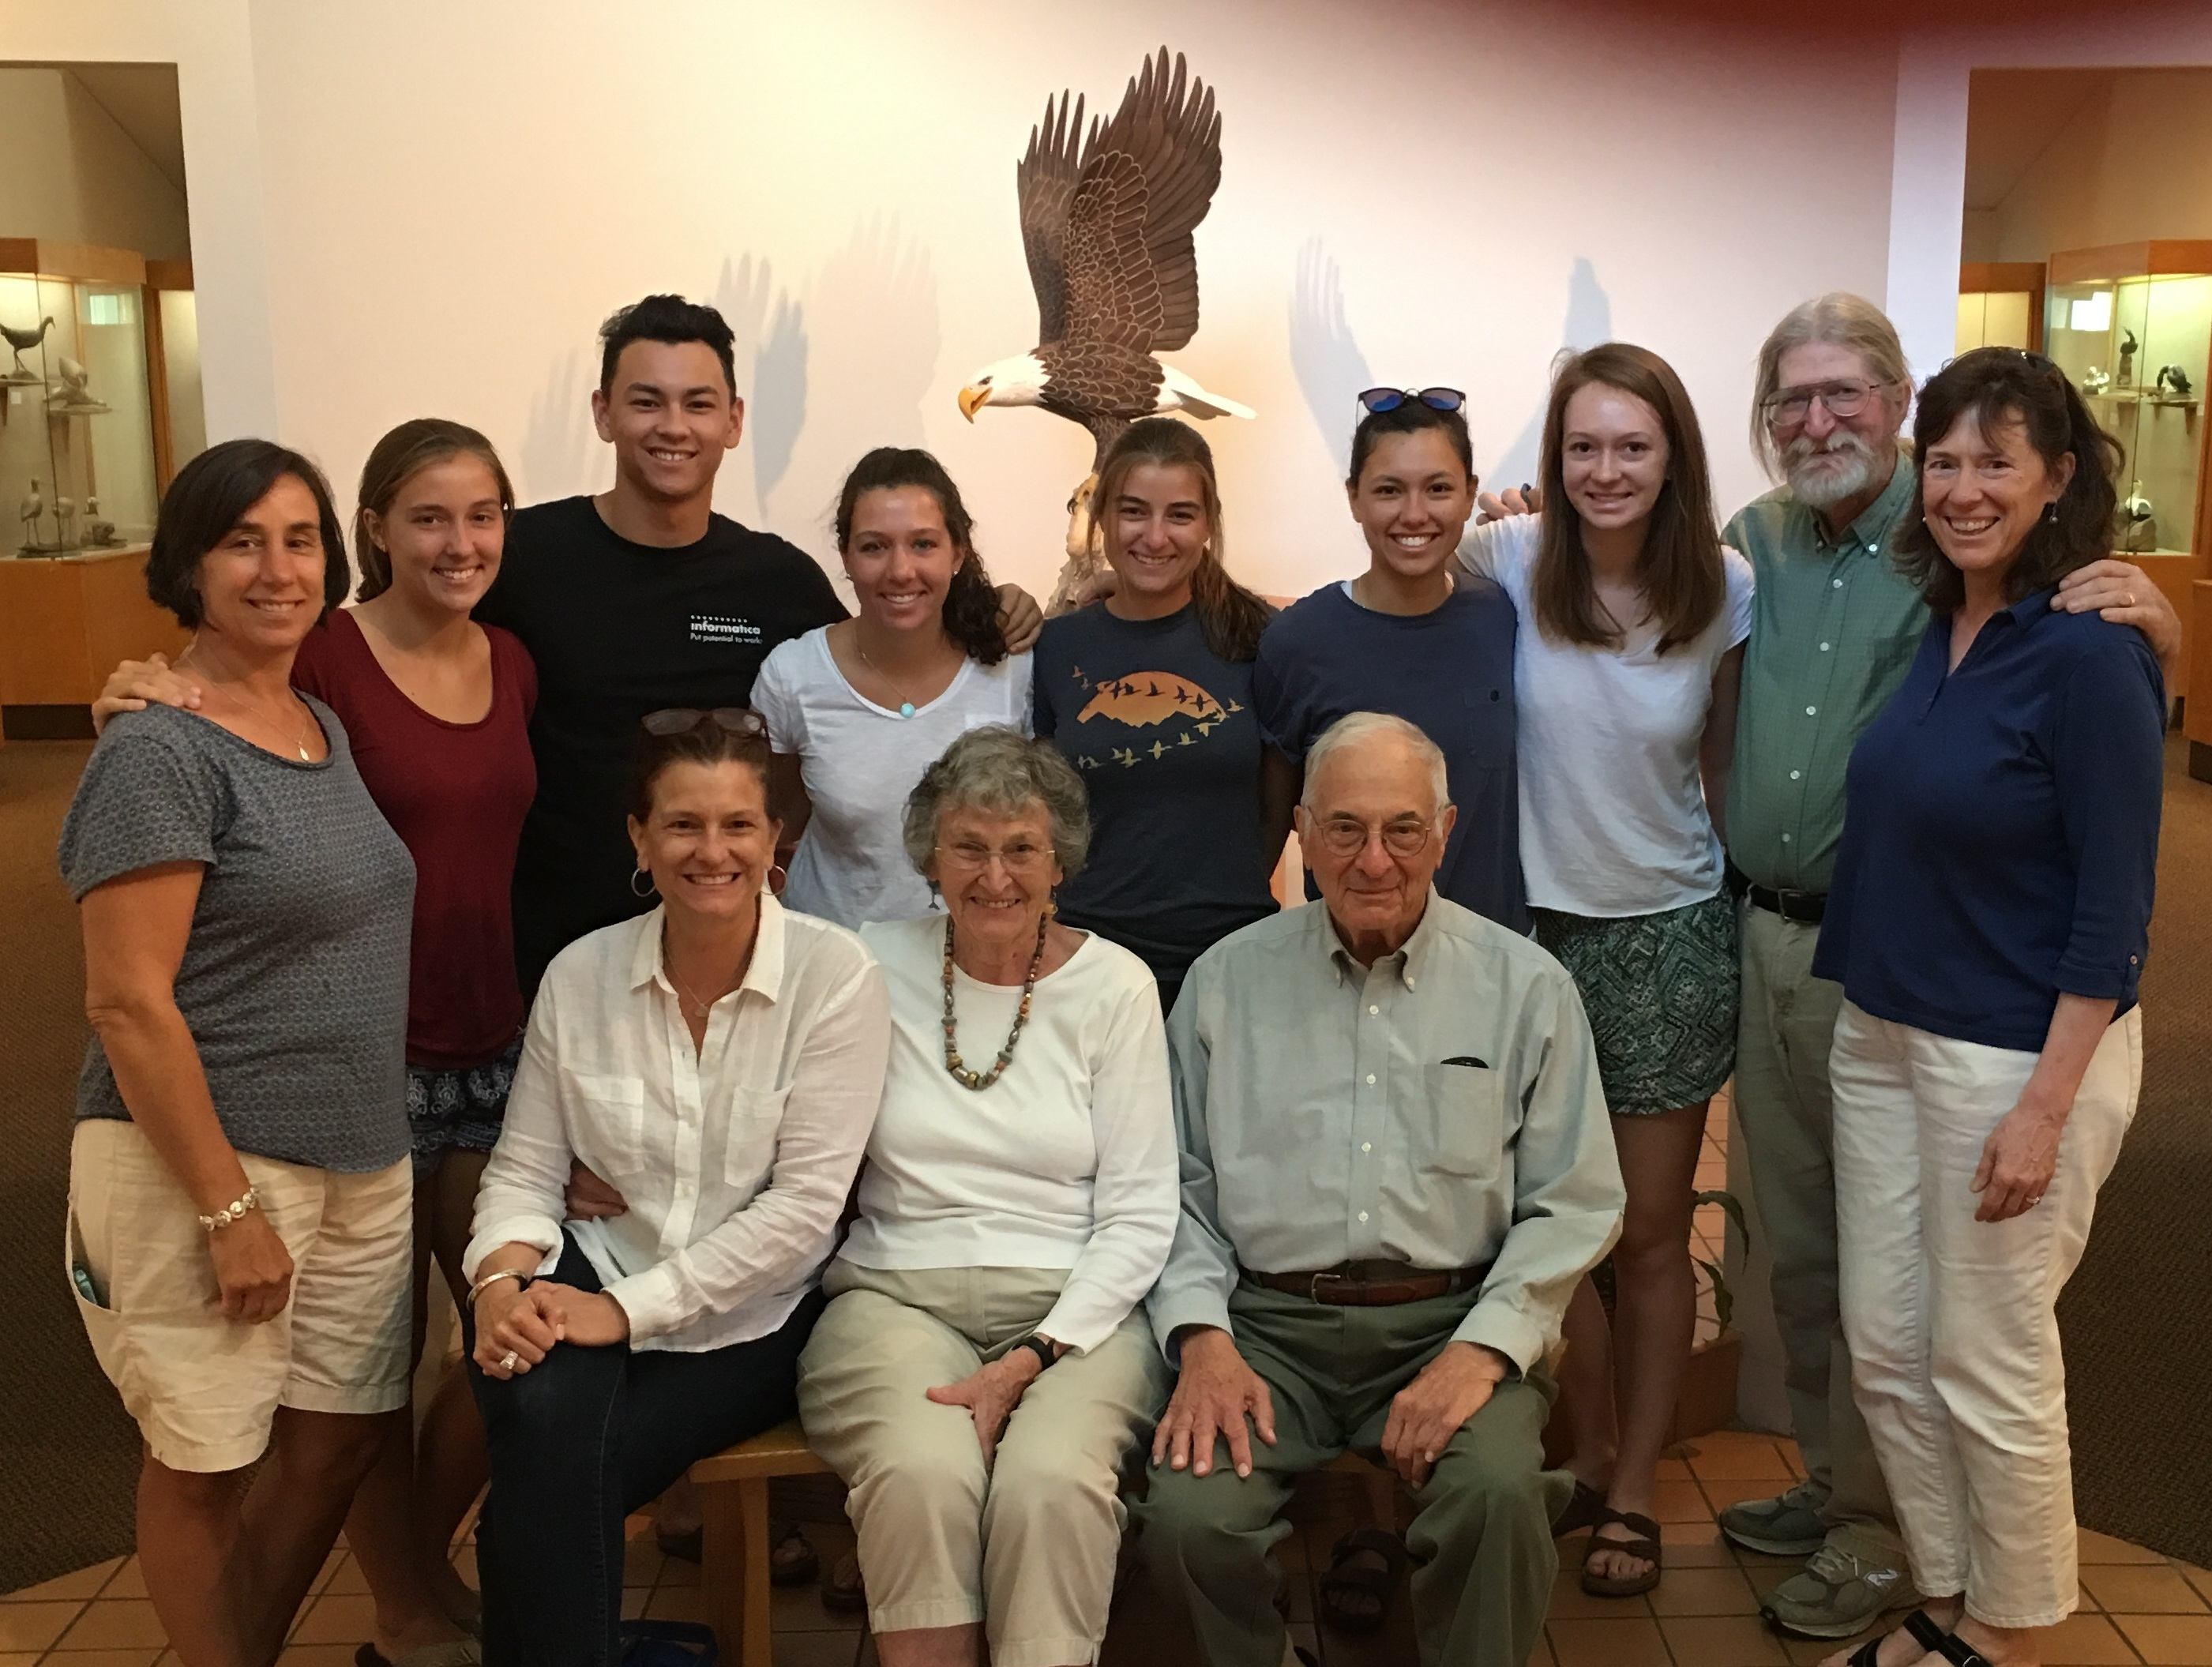 Whitfield Painter family visit the Museum